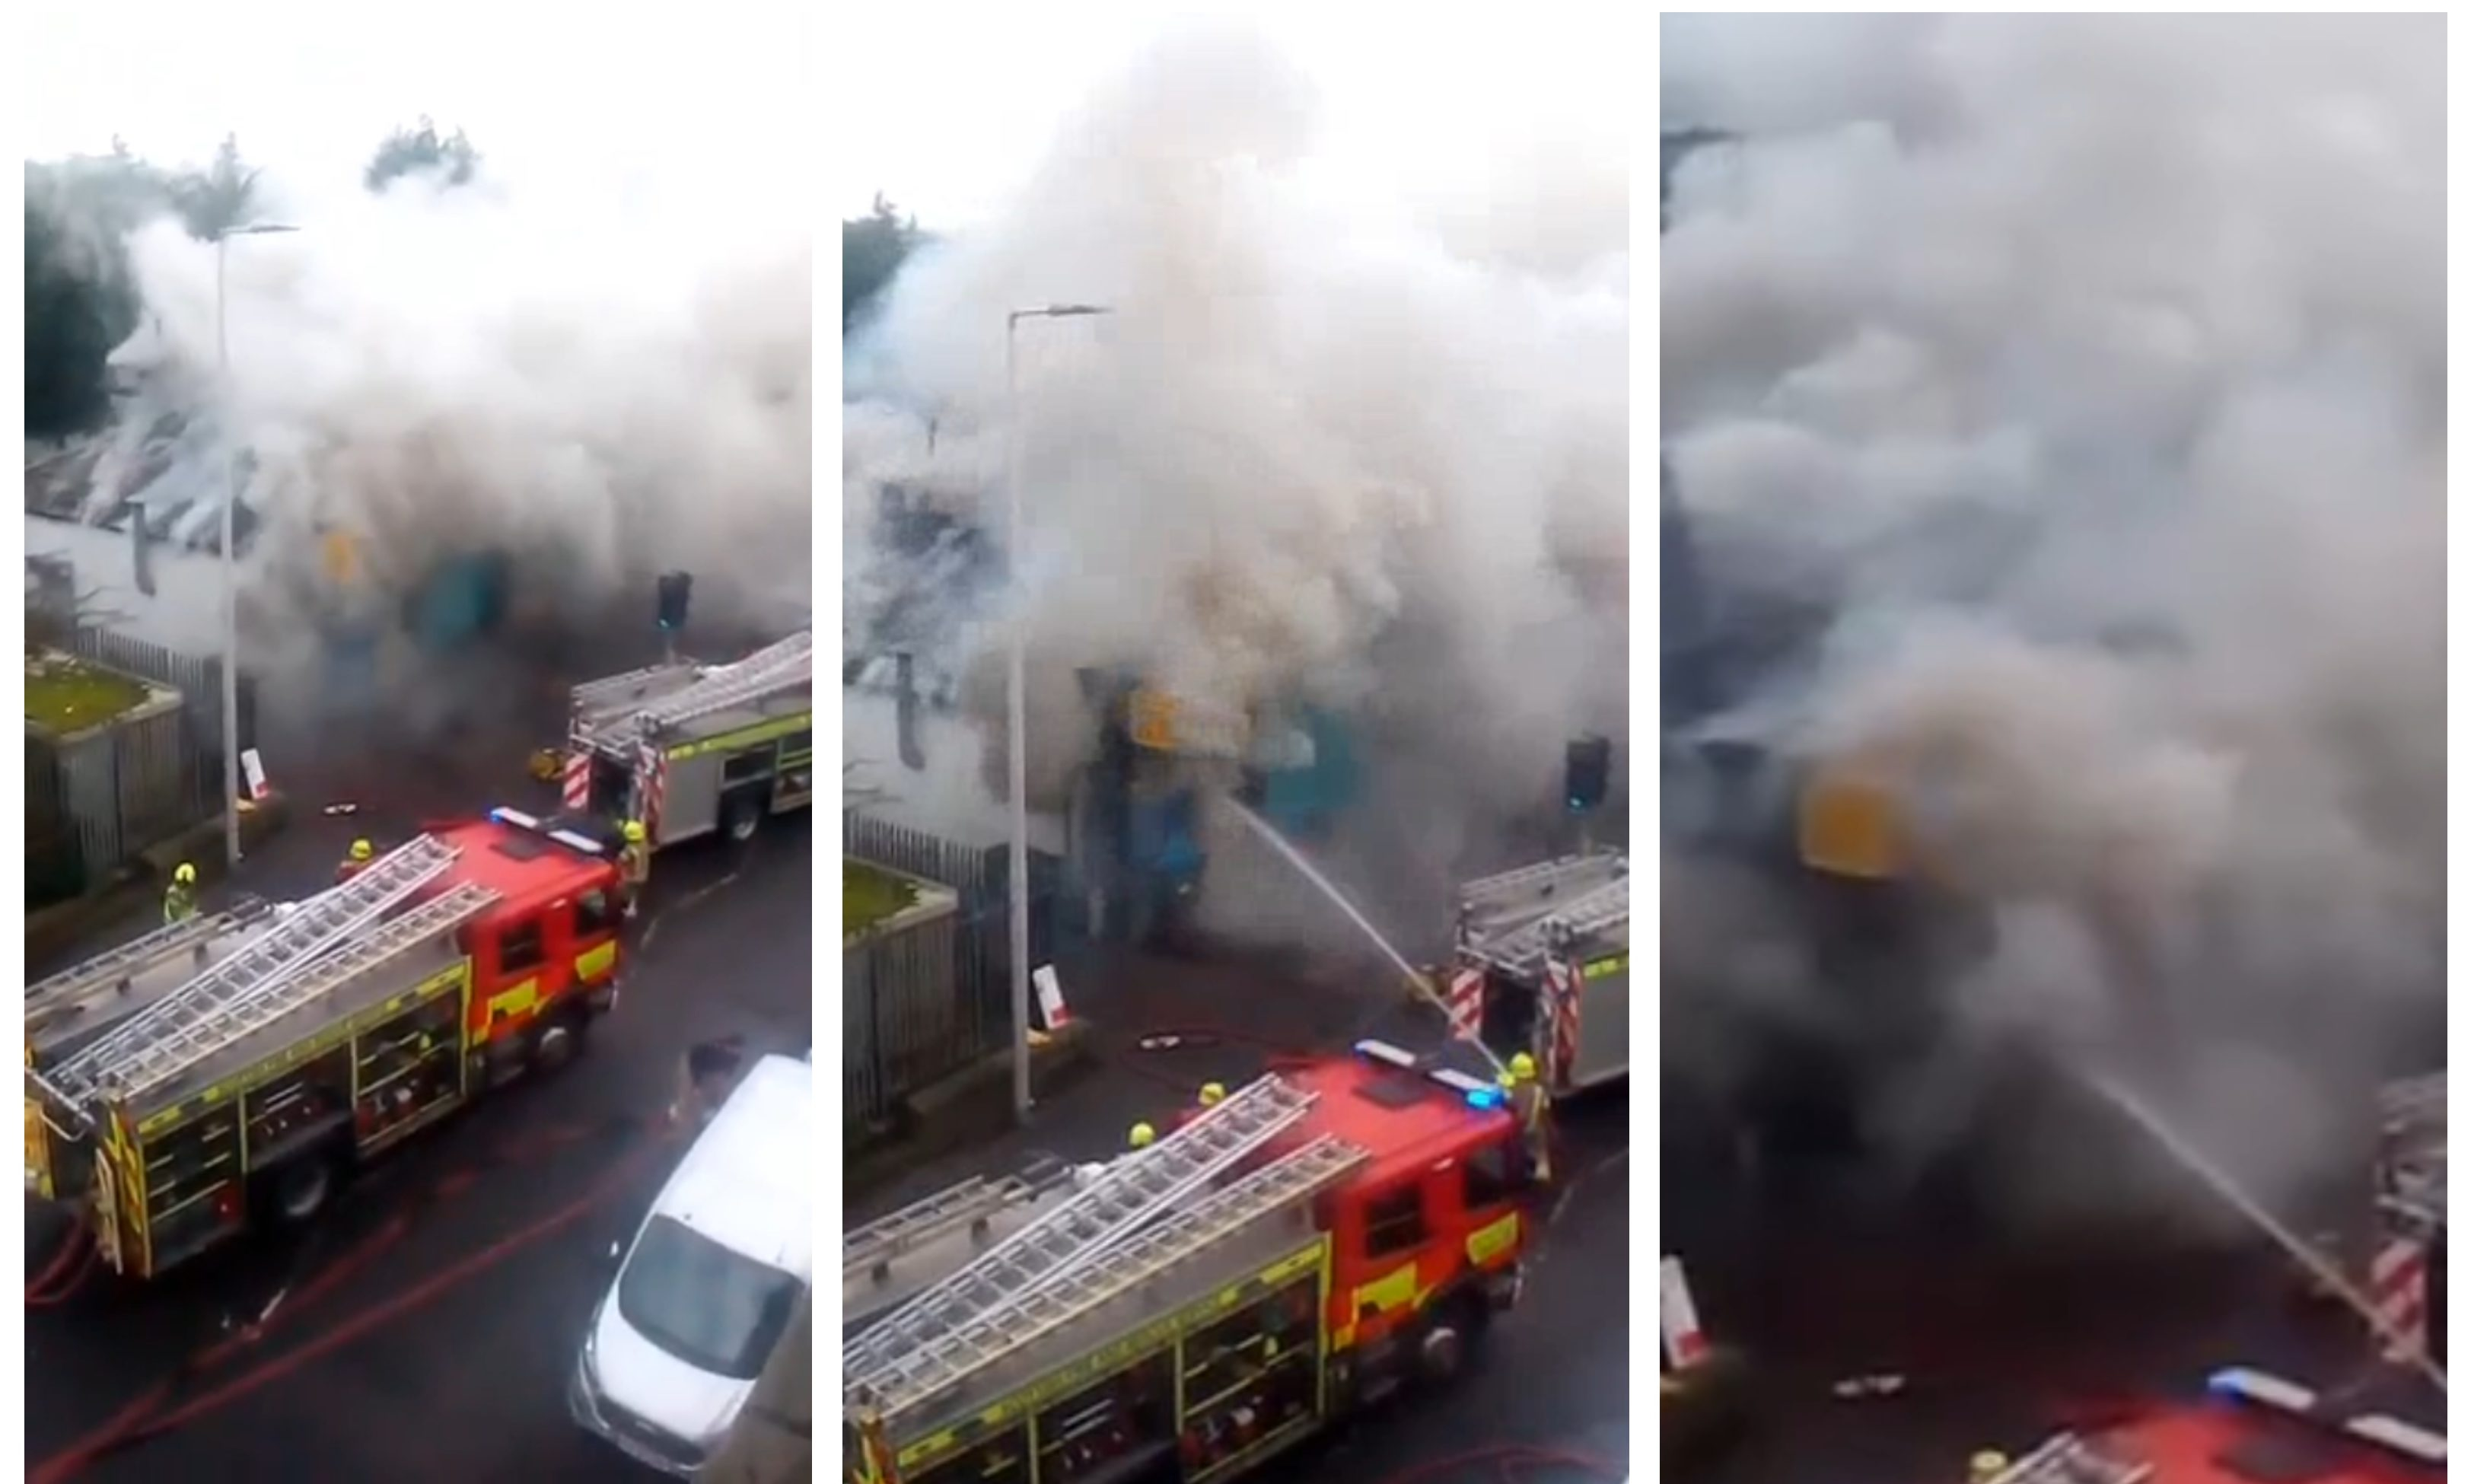 Footage shows the moment the blaze ripped through China China on Clepington Road, Dundee.